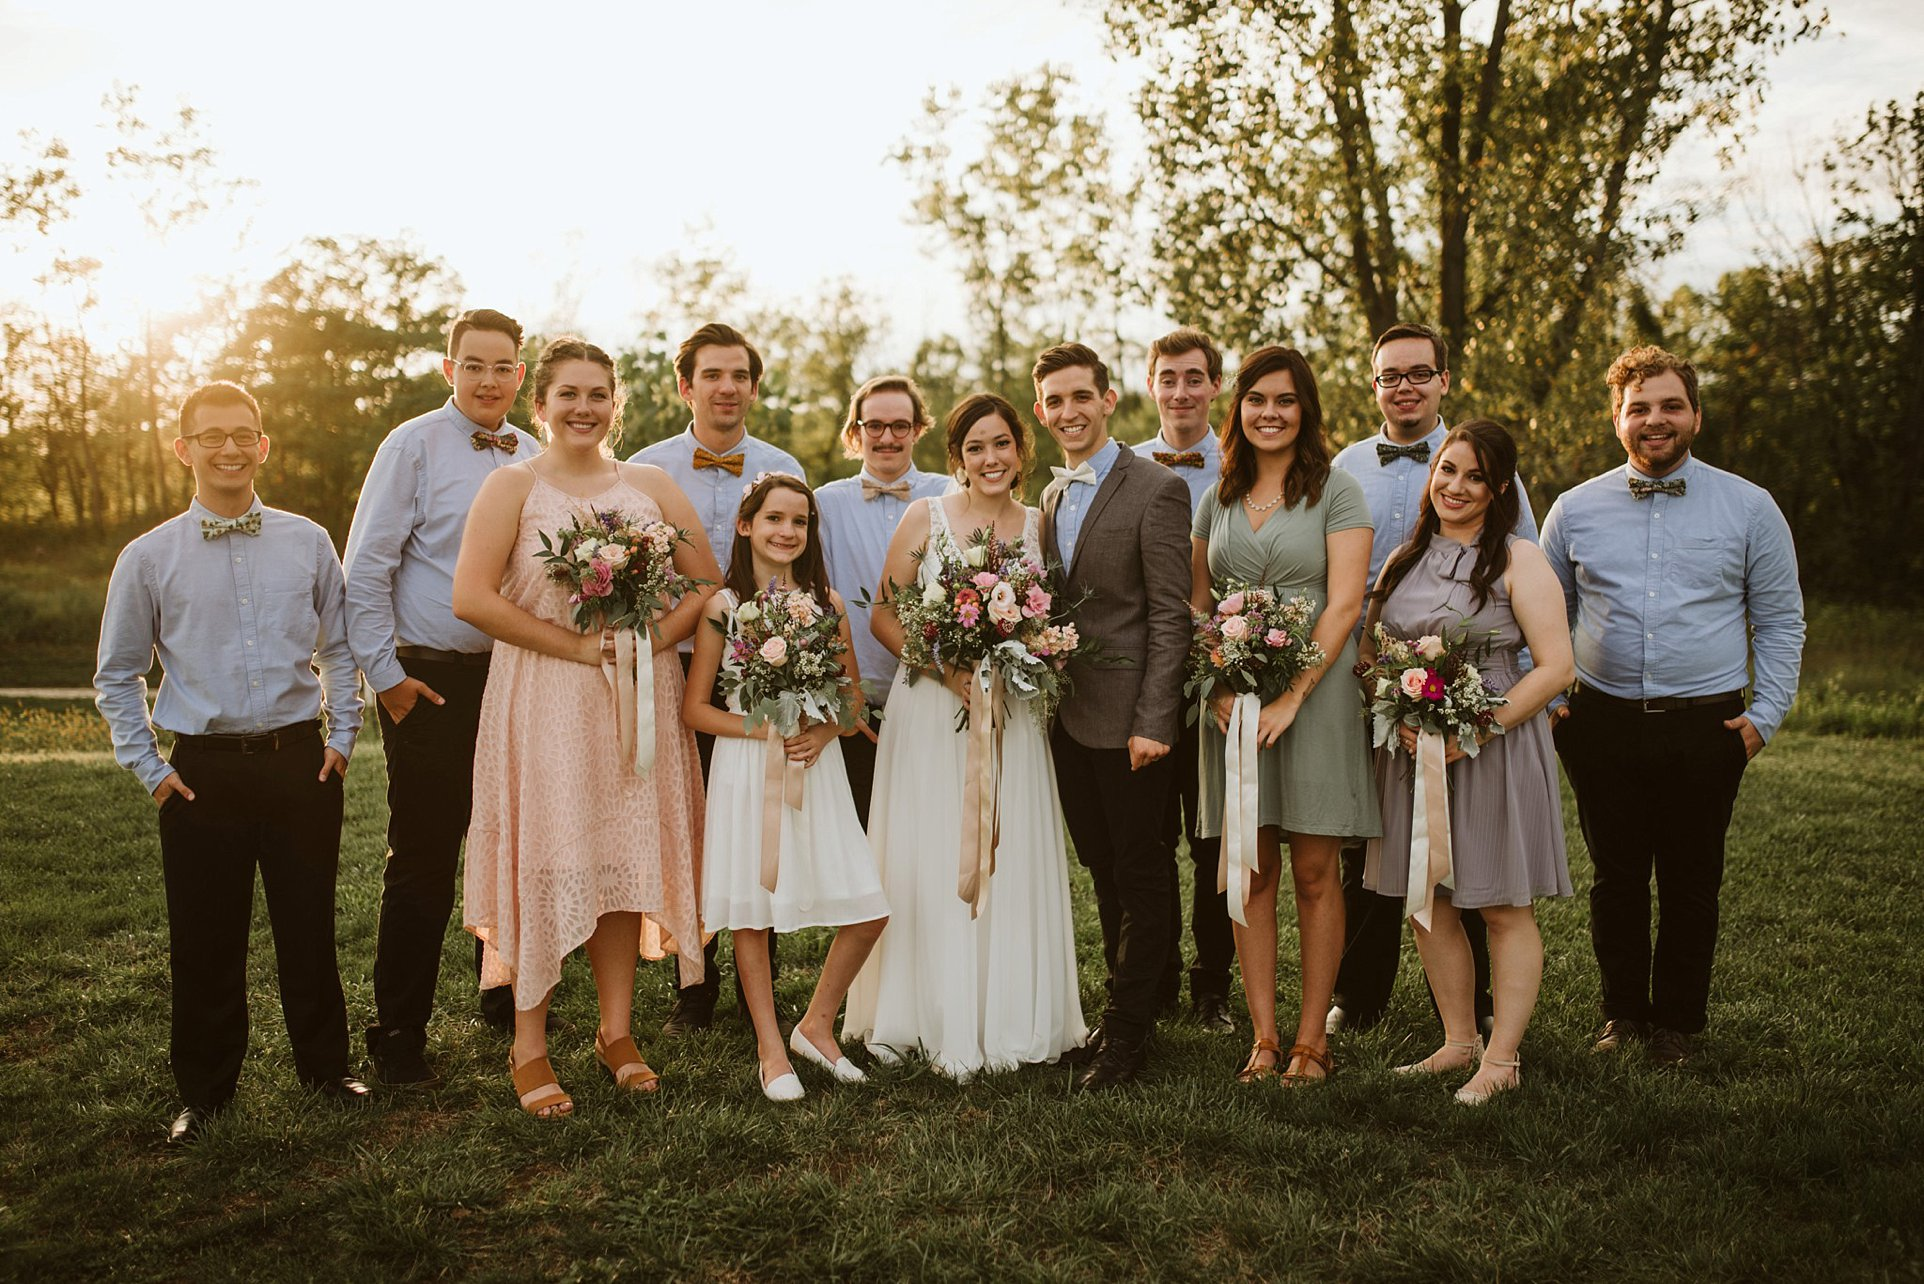 ohio-wedding-photographer-boho-garden-floral-wedding-079